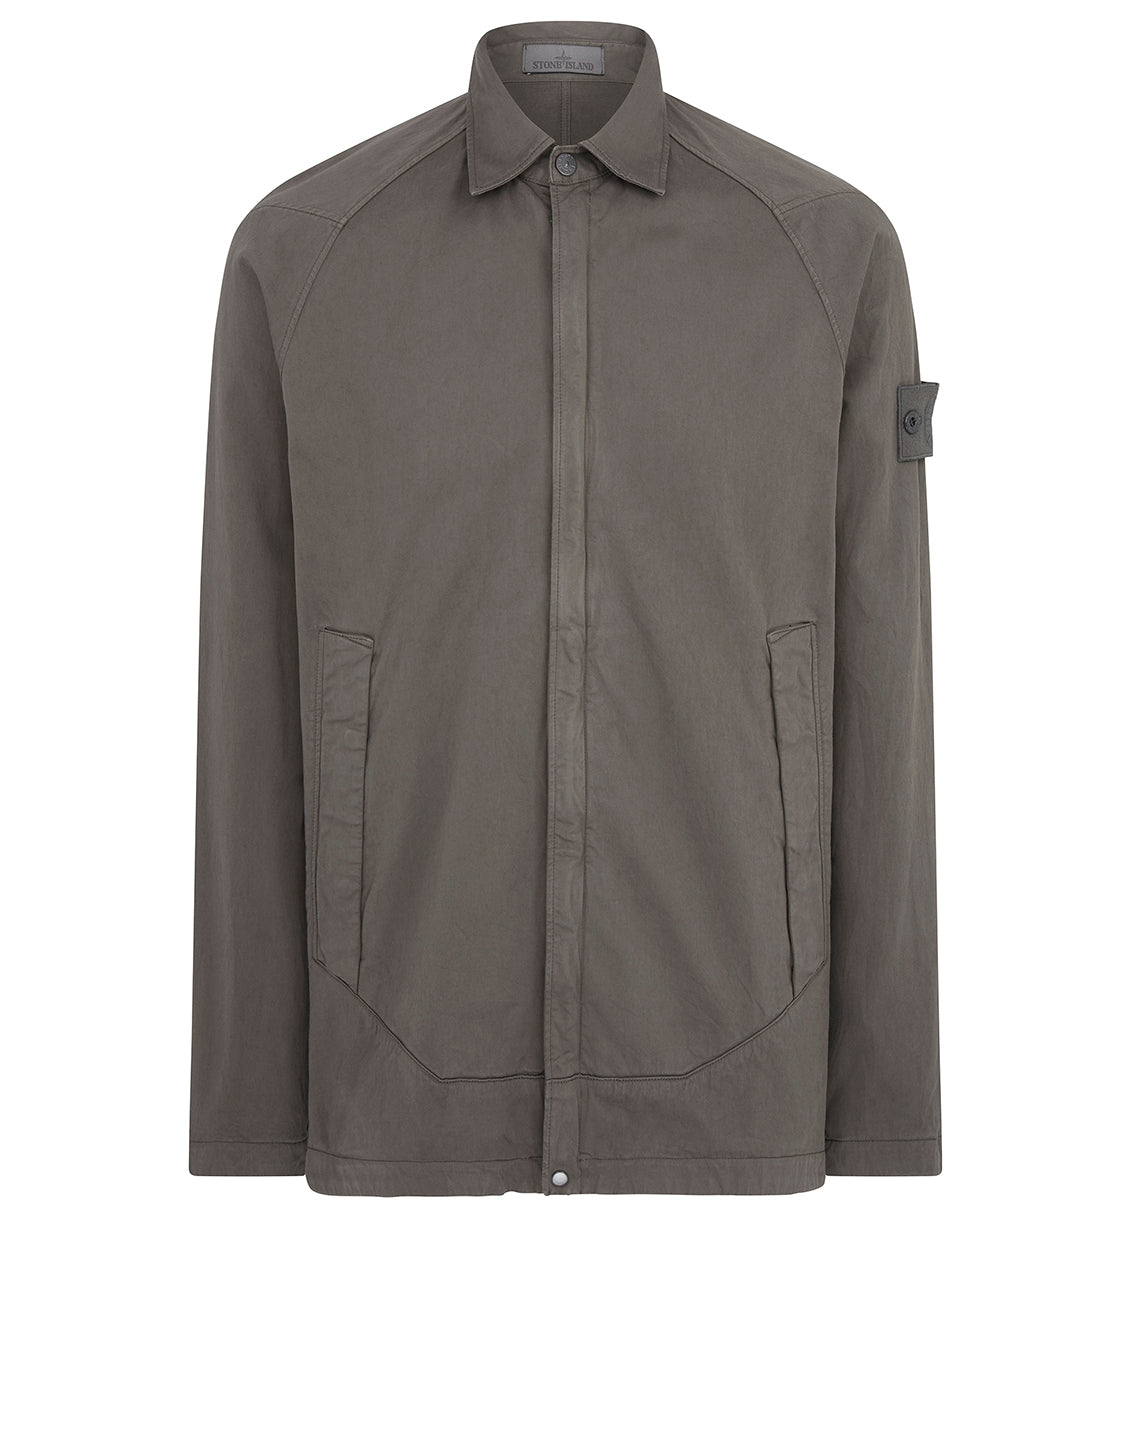 116F4 Overshirt in Smoky Grey